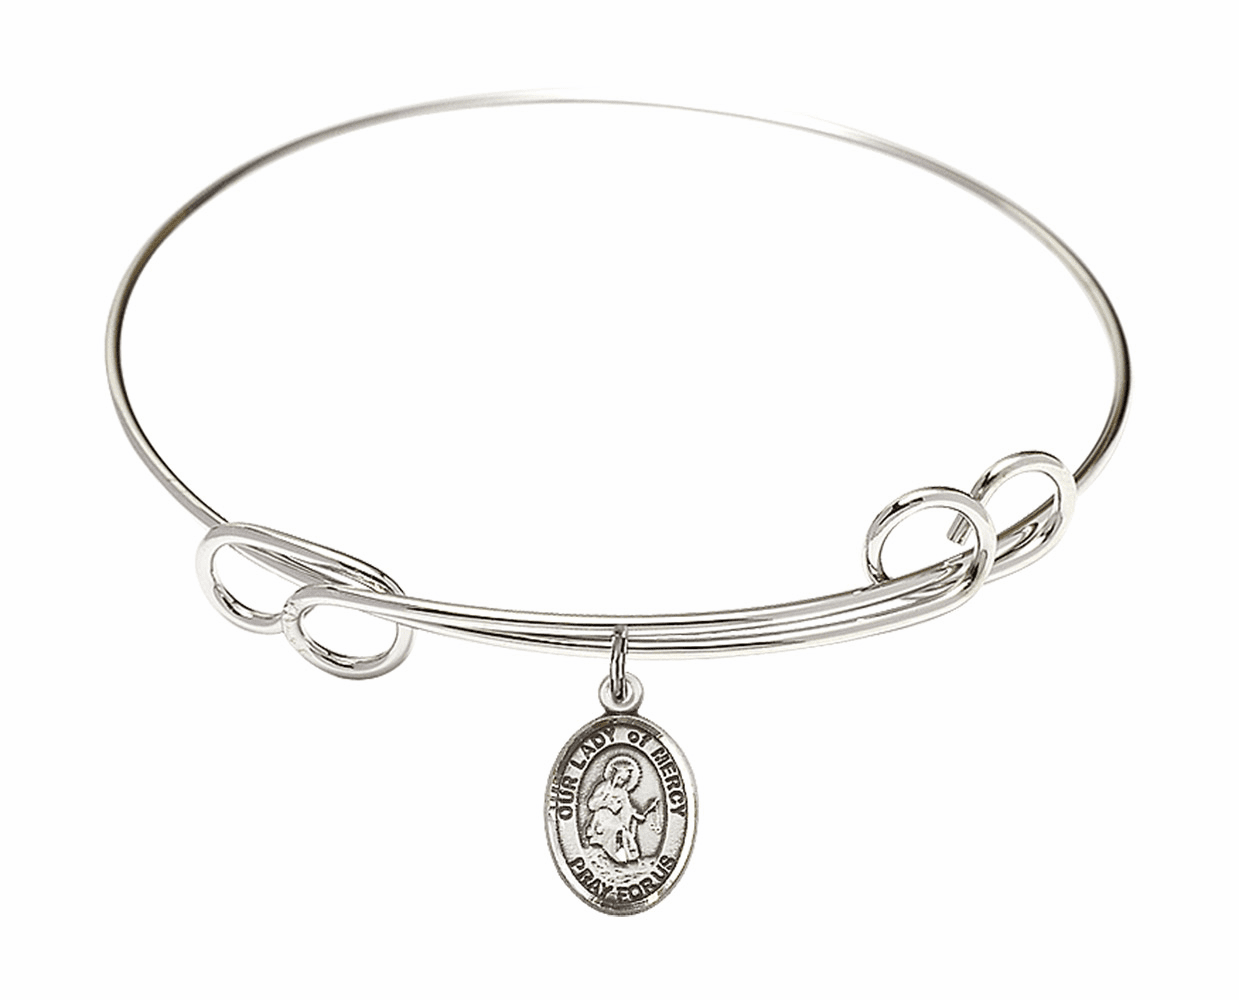 Round Loop Our Lady of Mercy Bangle Charm Bracelet by Bliss